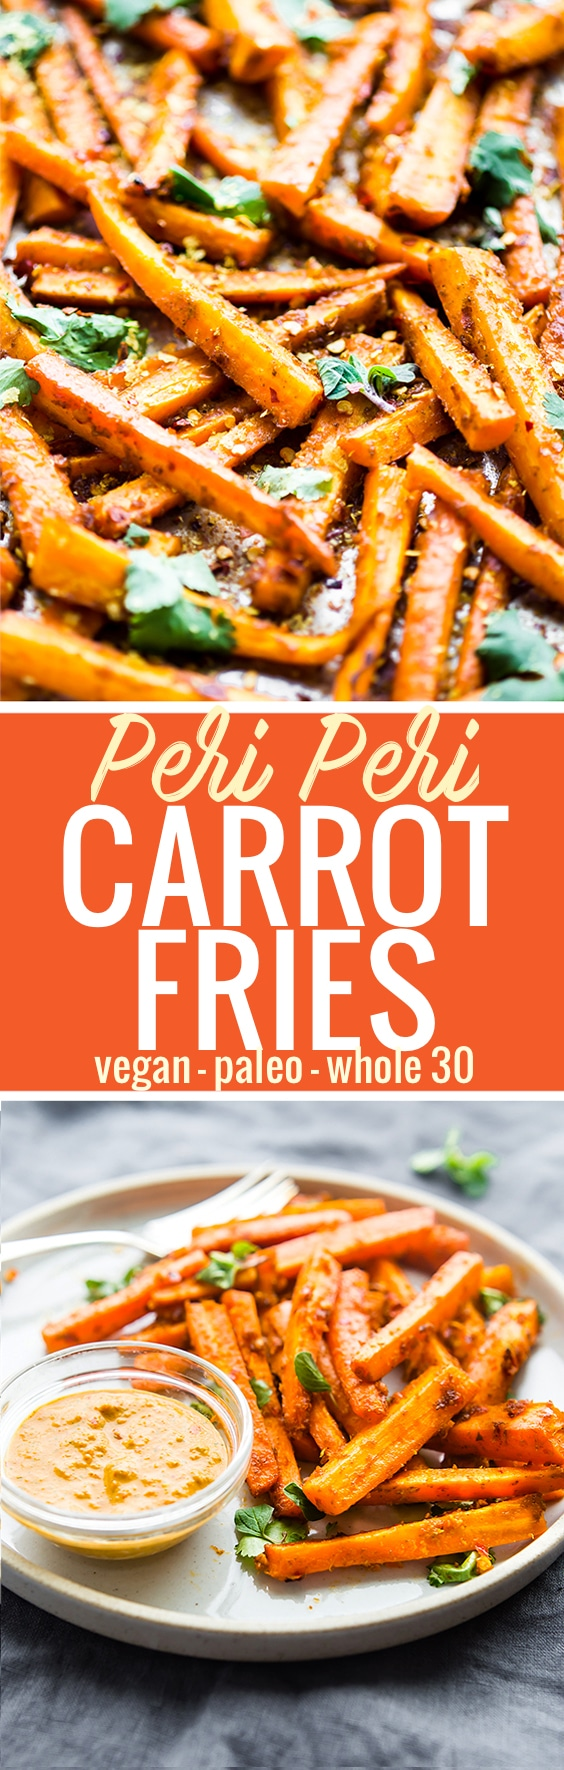 These Peri Peri oven baked carrot fries are gonna knock your socks off ya'll! The homemade Peri Peri Sauce is the key to making these carrot fries more flavorful.Just marinate slicecarrots in the sauce, bake, and enjoy! A paleo, vegan, and whole 30 friendly snack with akickof spice. www.cottercrunch.com